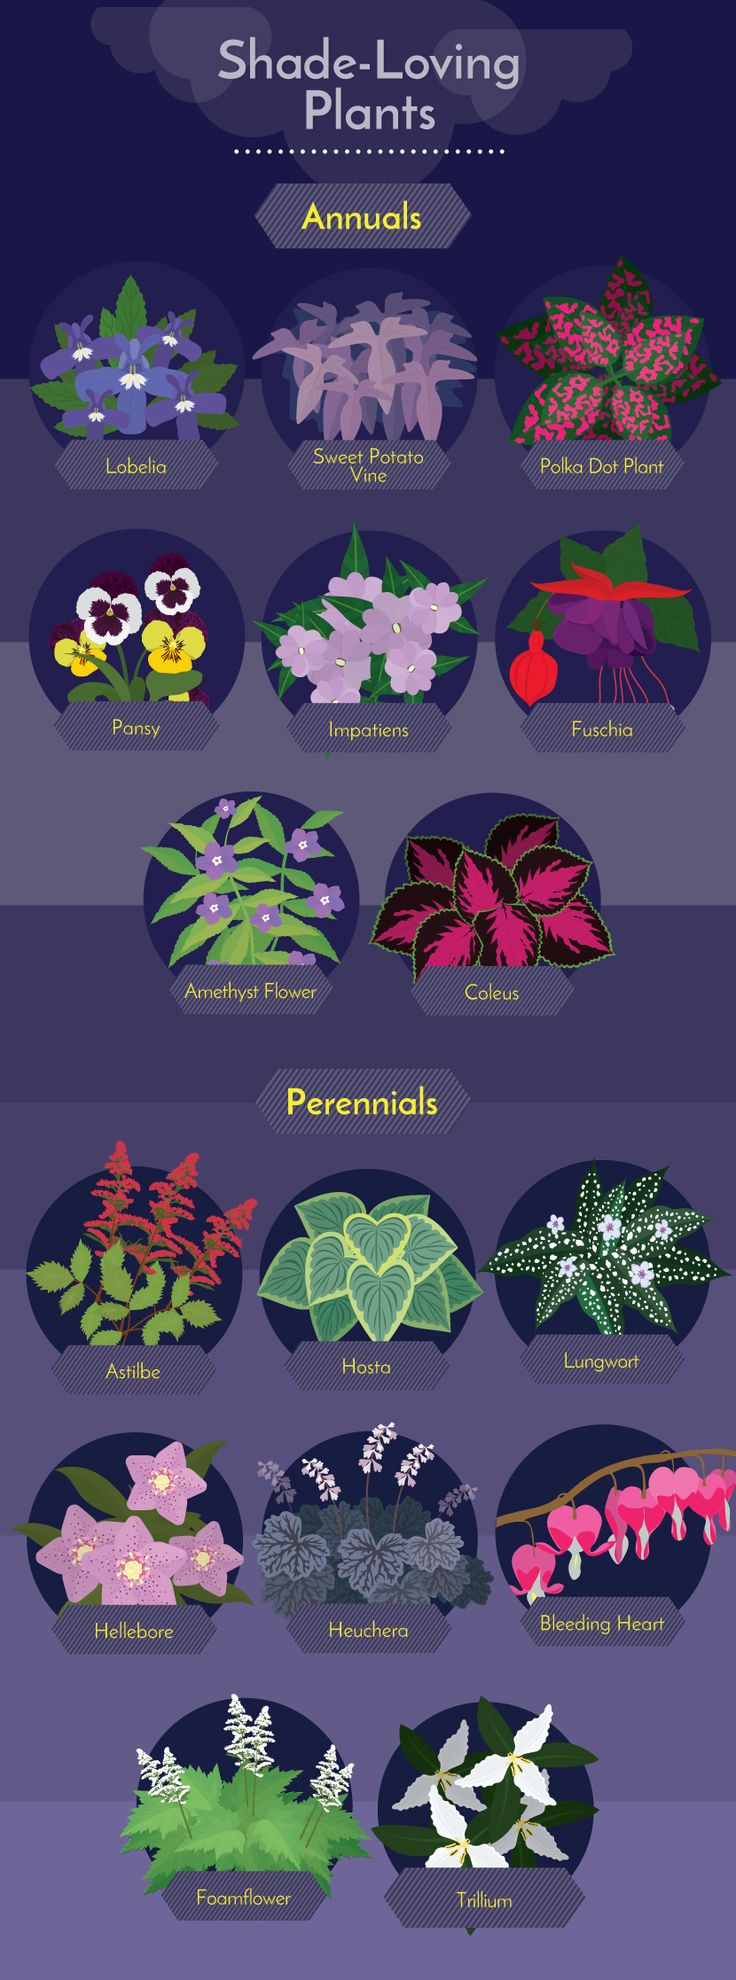 Shade-Loving Plants - Working With Challenging Garden Styles